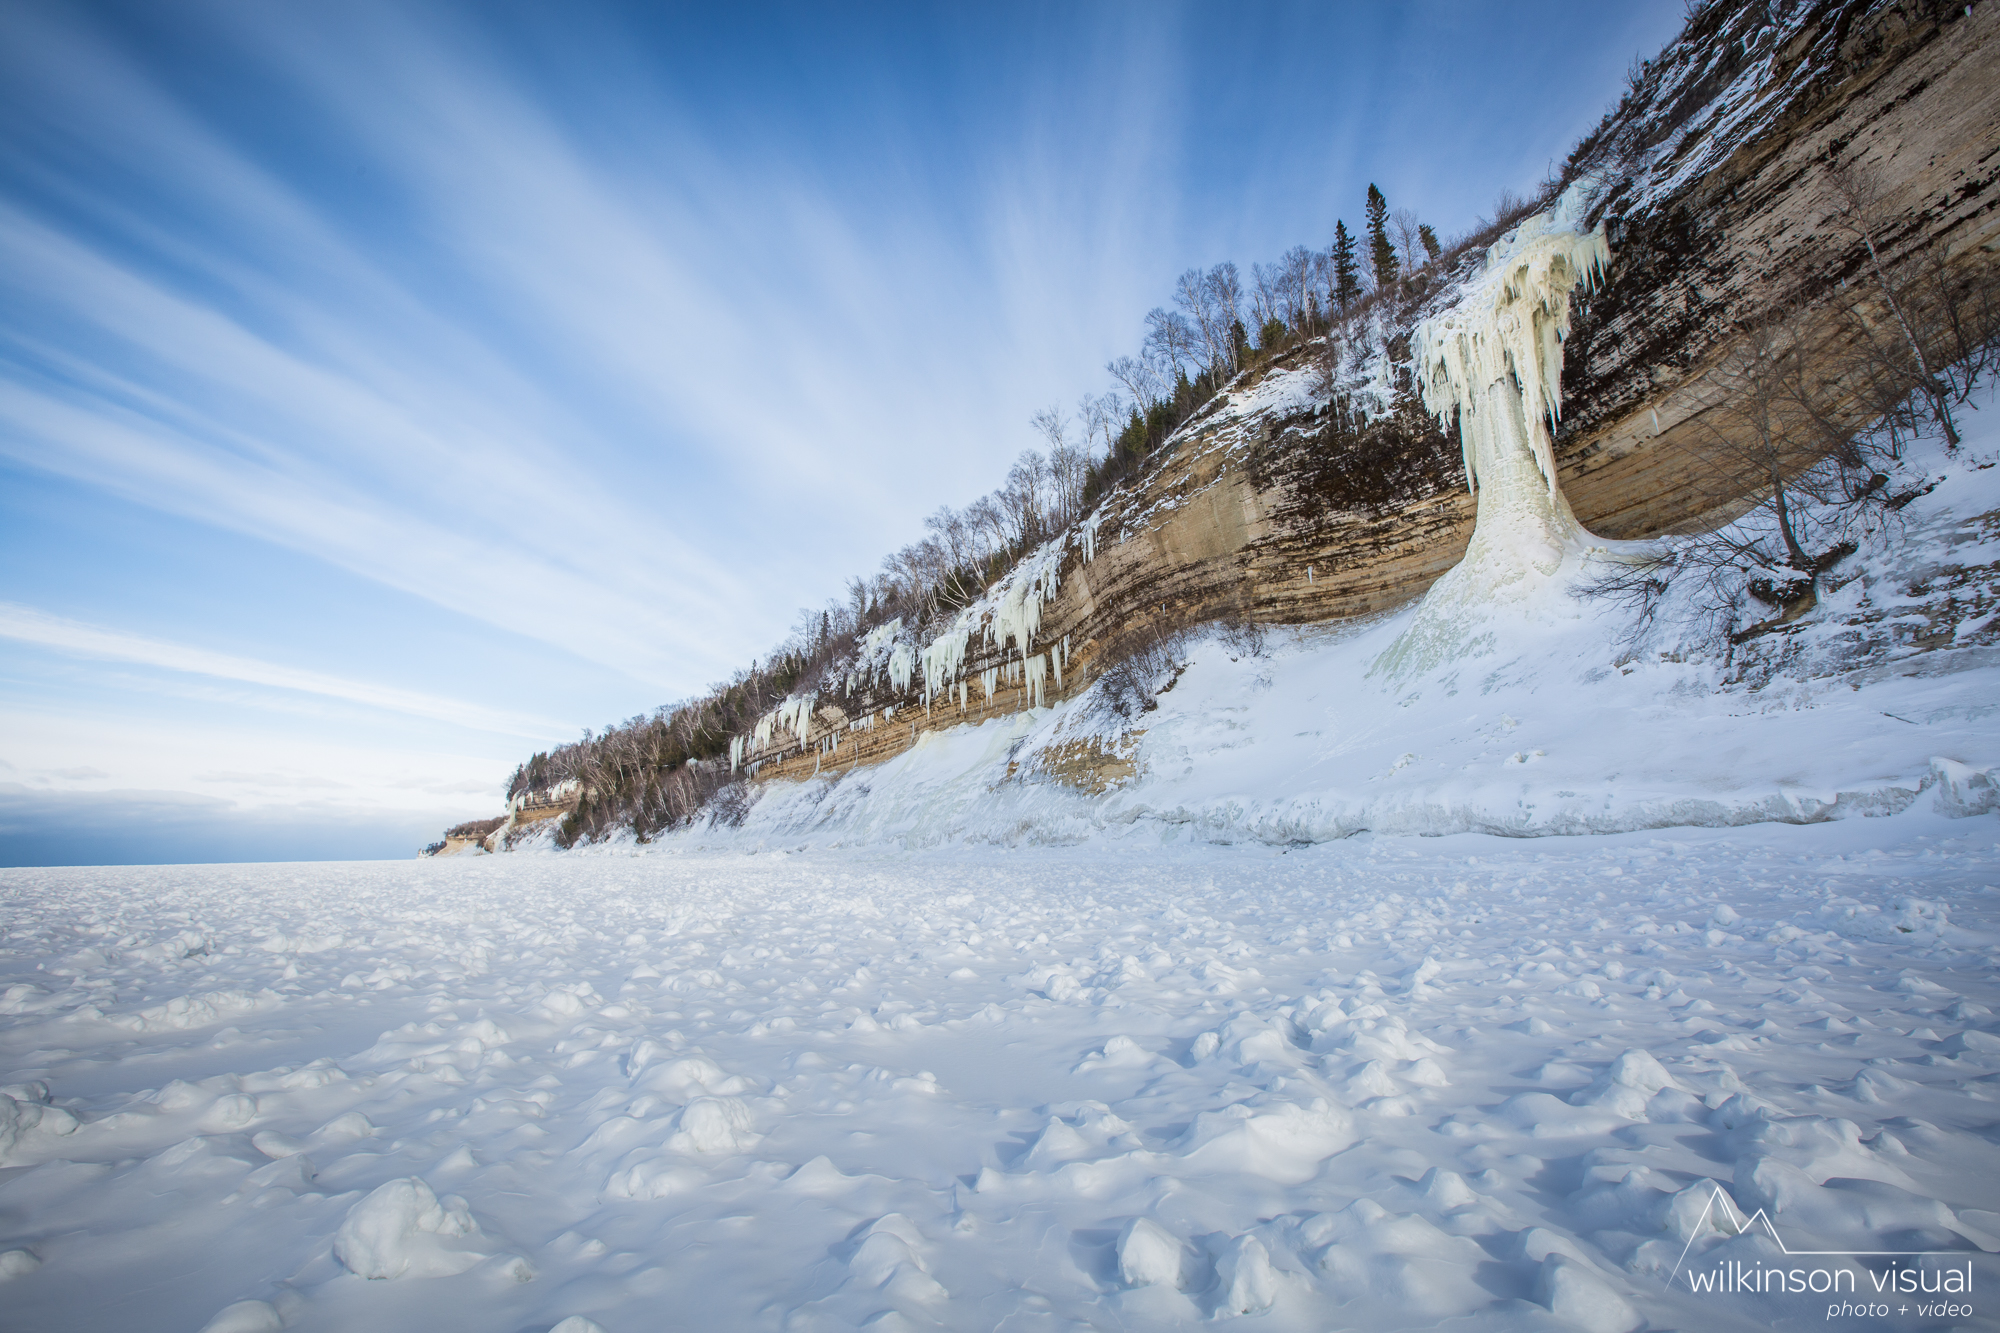 The lakeshore along Pictured Rocks during winter of 2018. Climb shown is Dairyland.